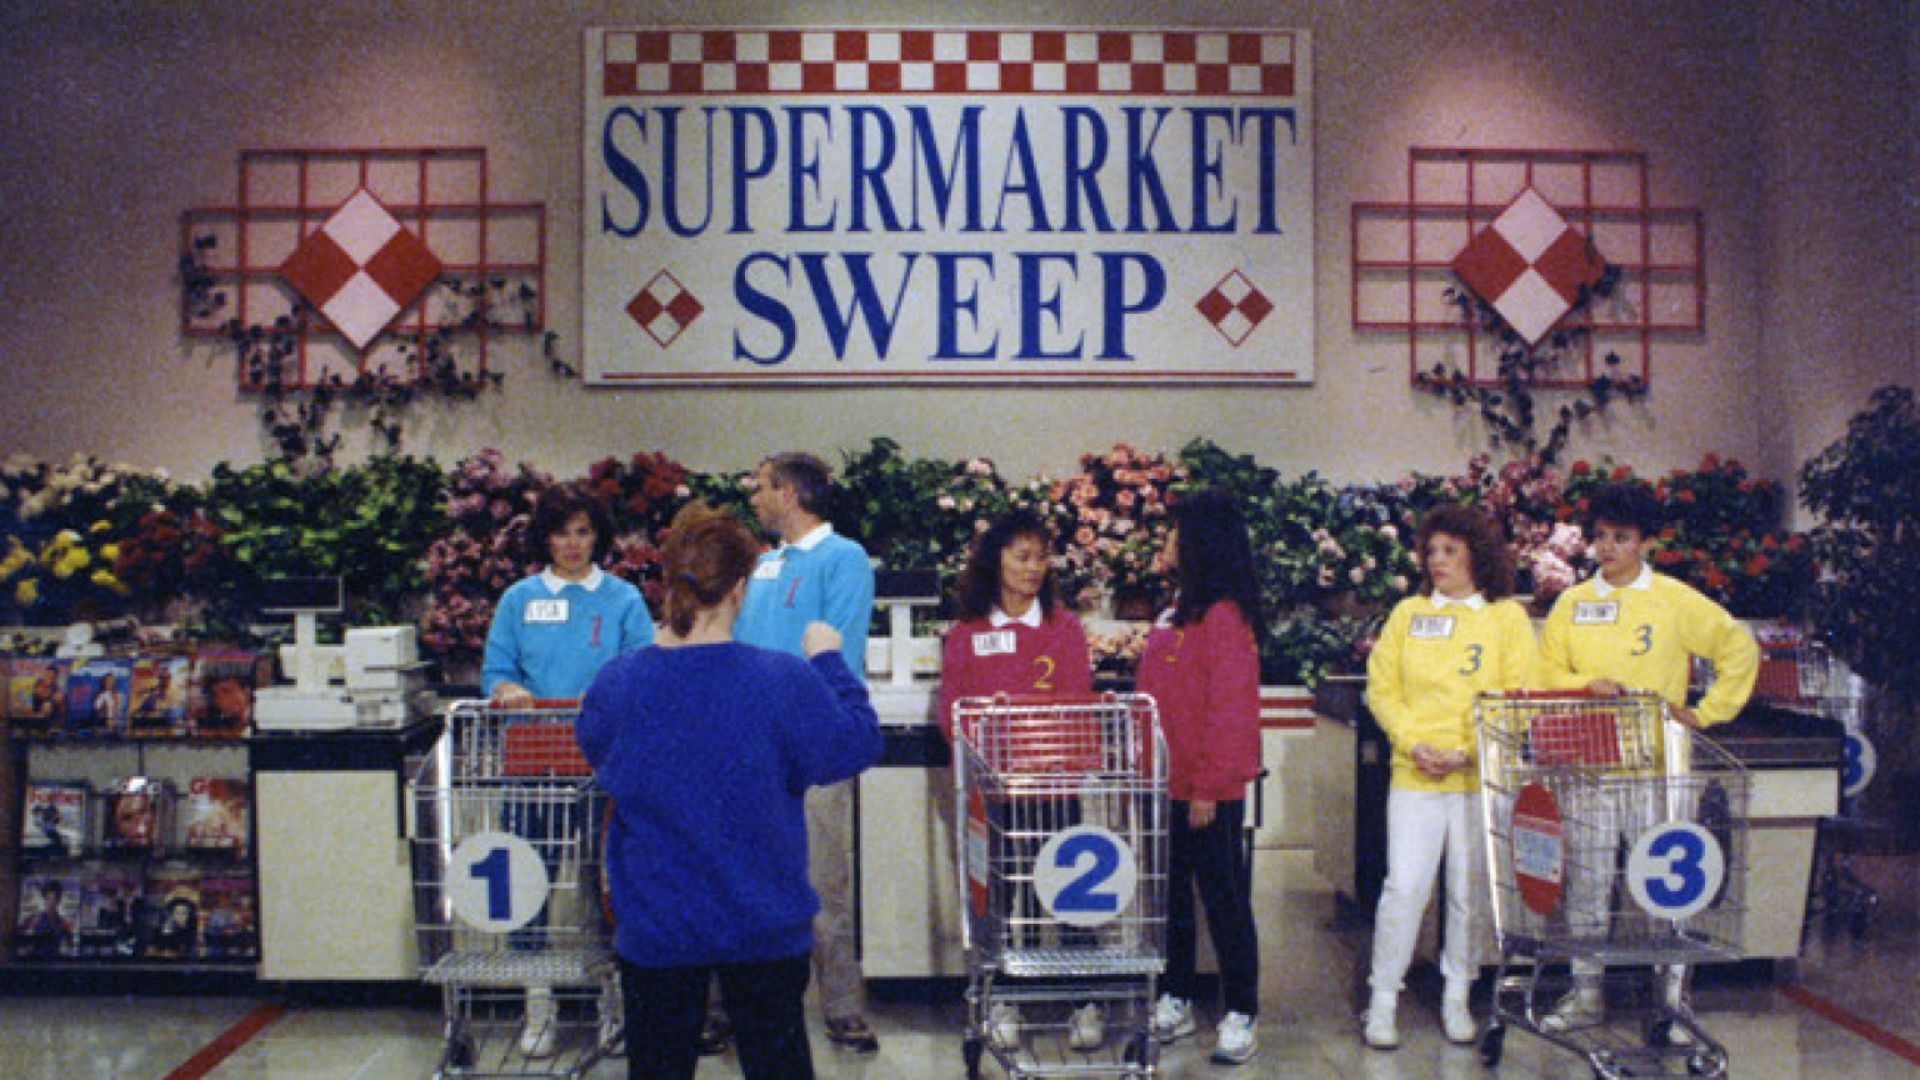 5 Game Shows We'd Love to See Make a Comeback